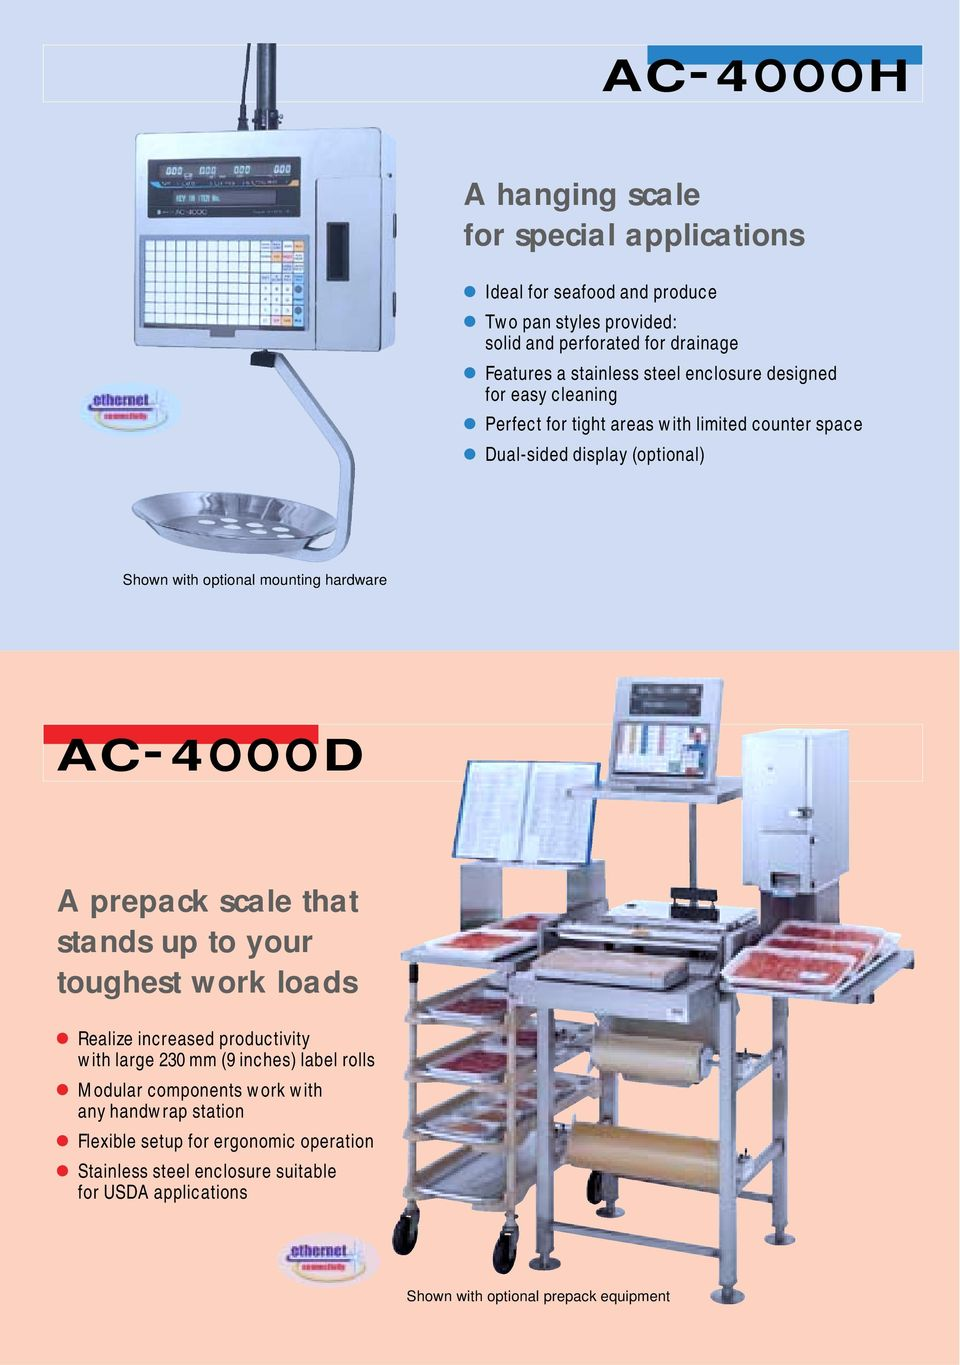 AC - 4OOOD A prepack scale that stands up to your toughest work loads Realize increased productivity with large 230 mm (9 inches) label rolls Modular components